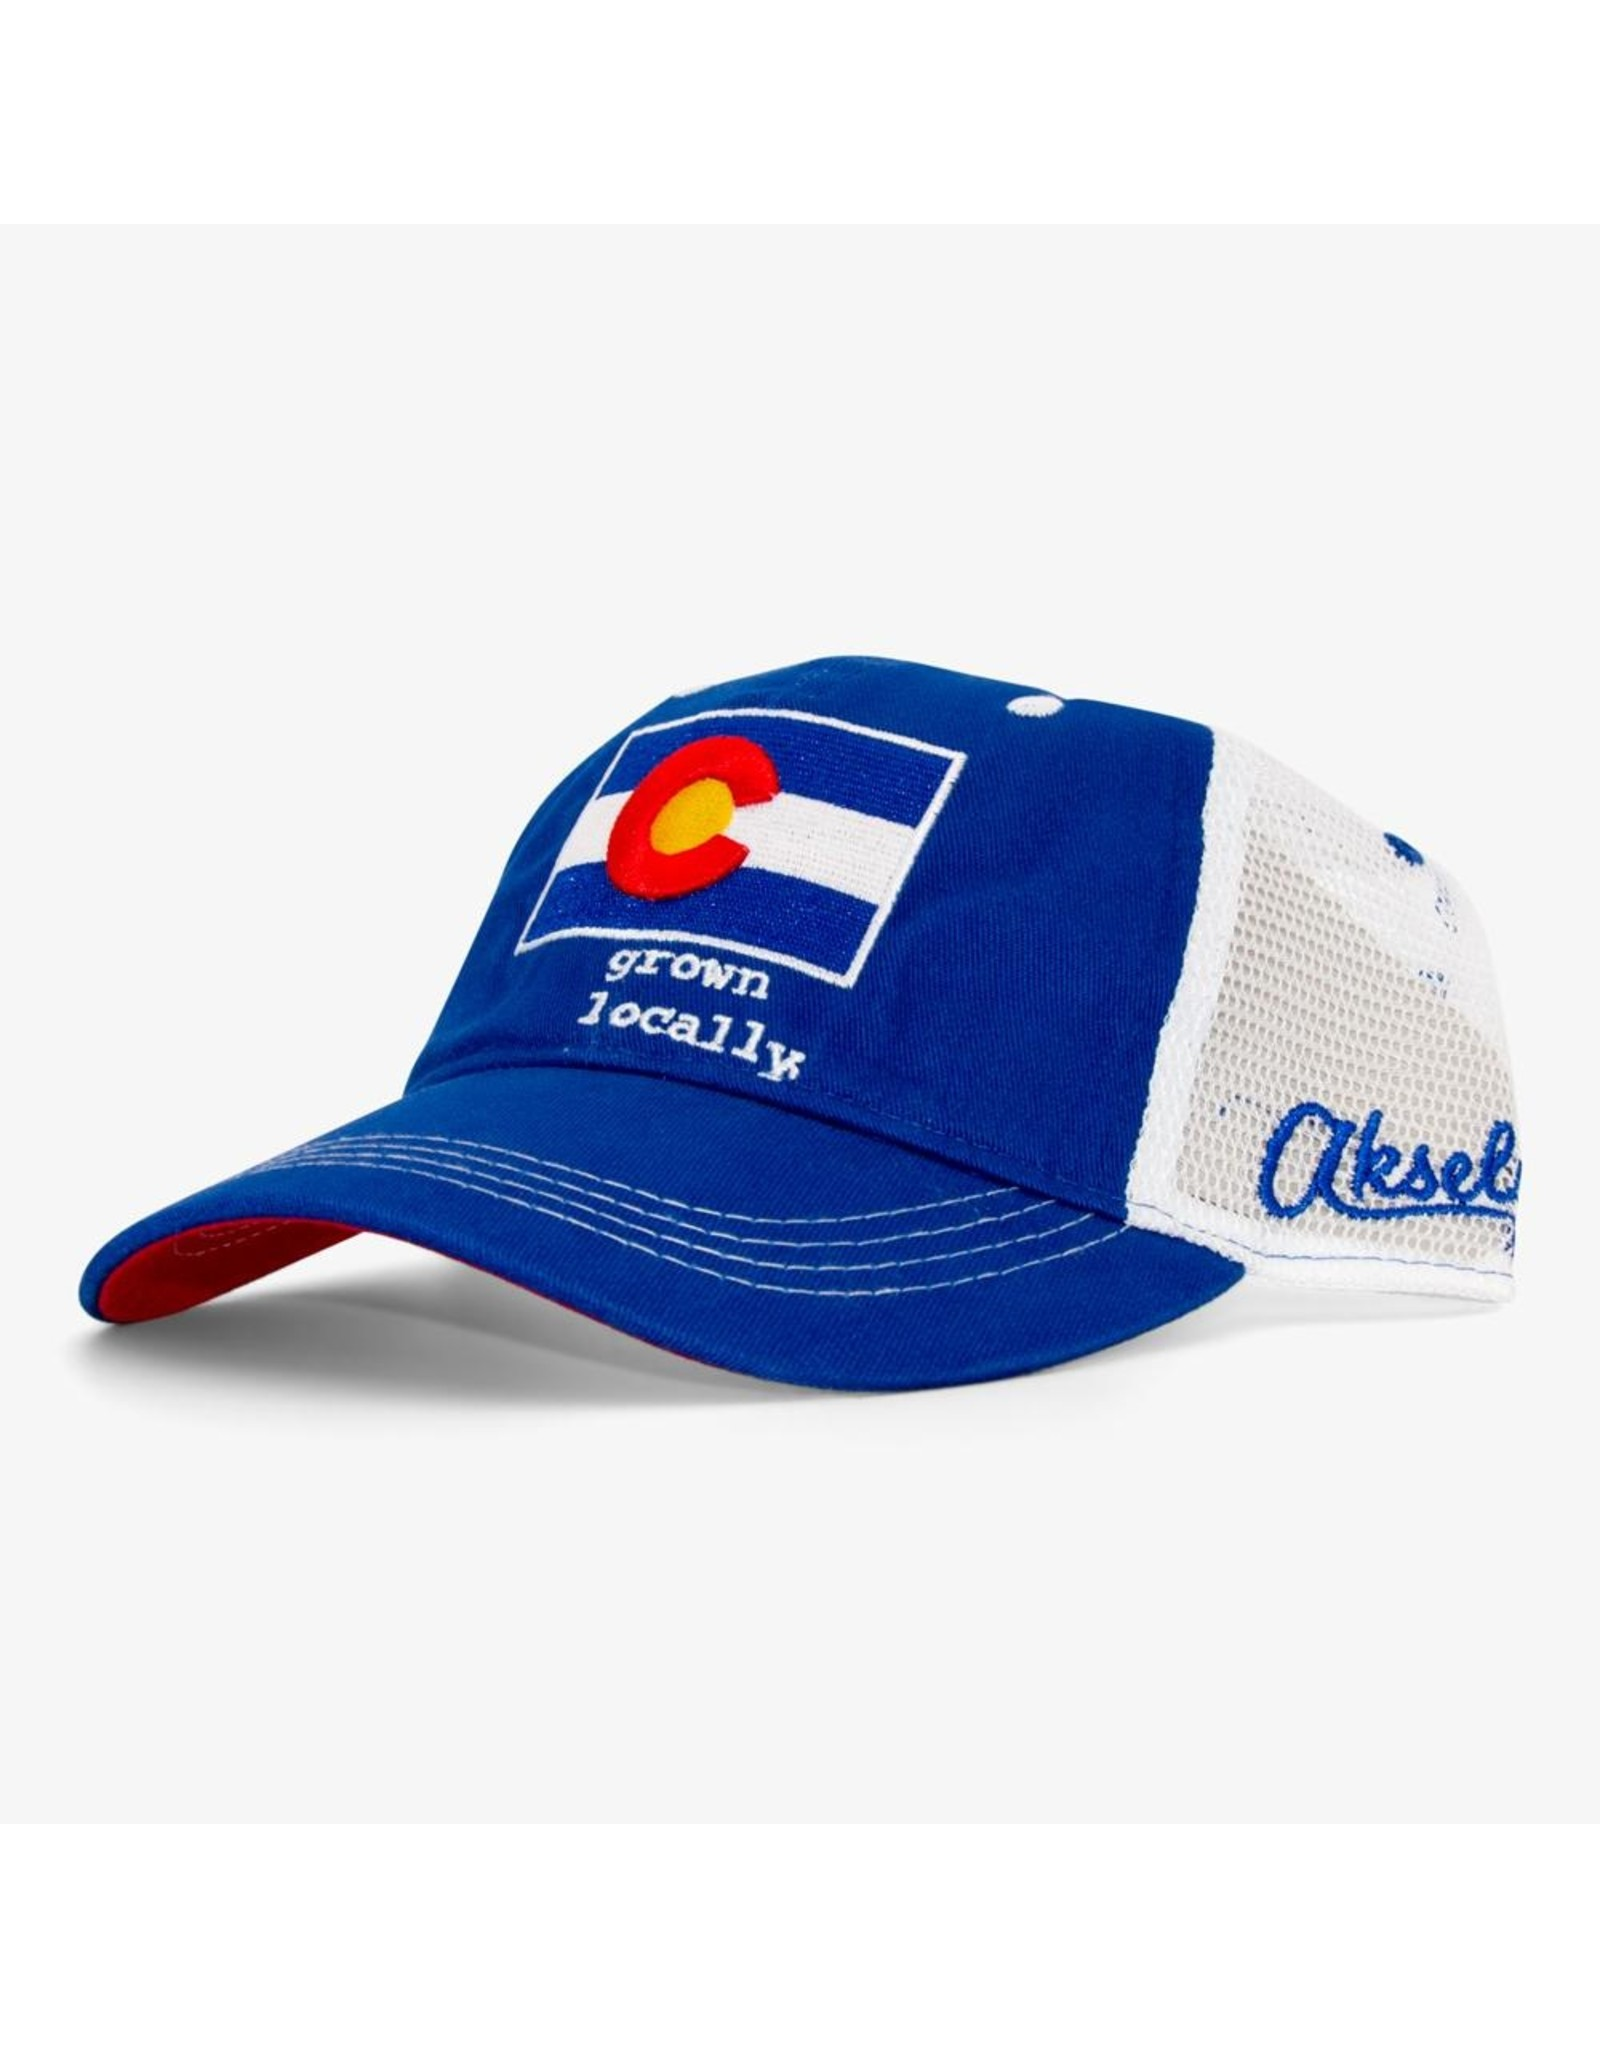 AKSELS Colorado Grown Locally Curved Trucker Hat